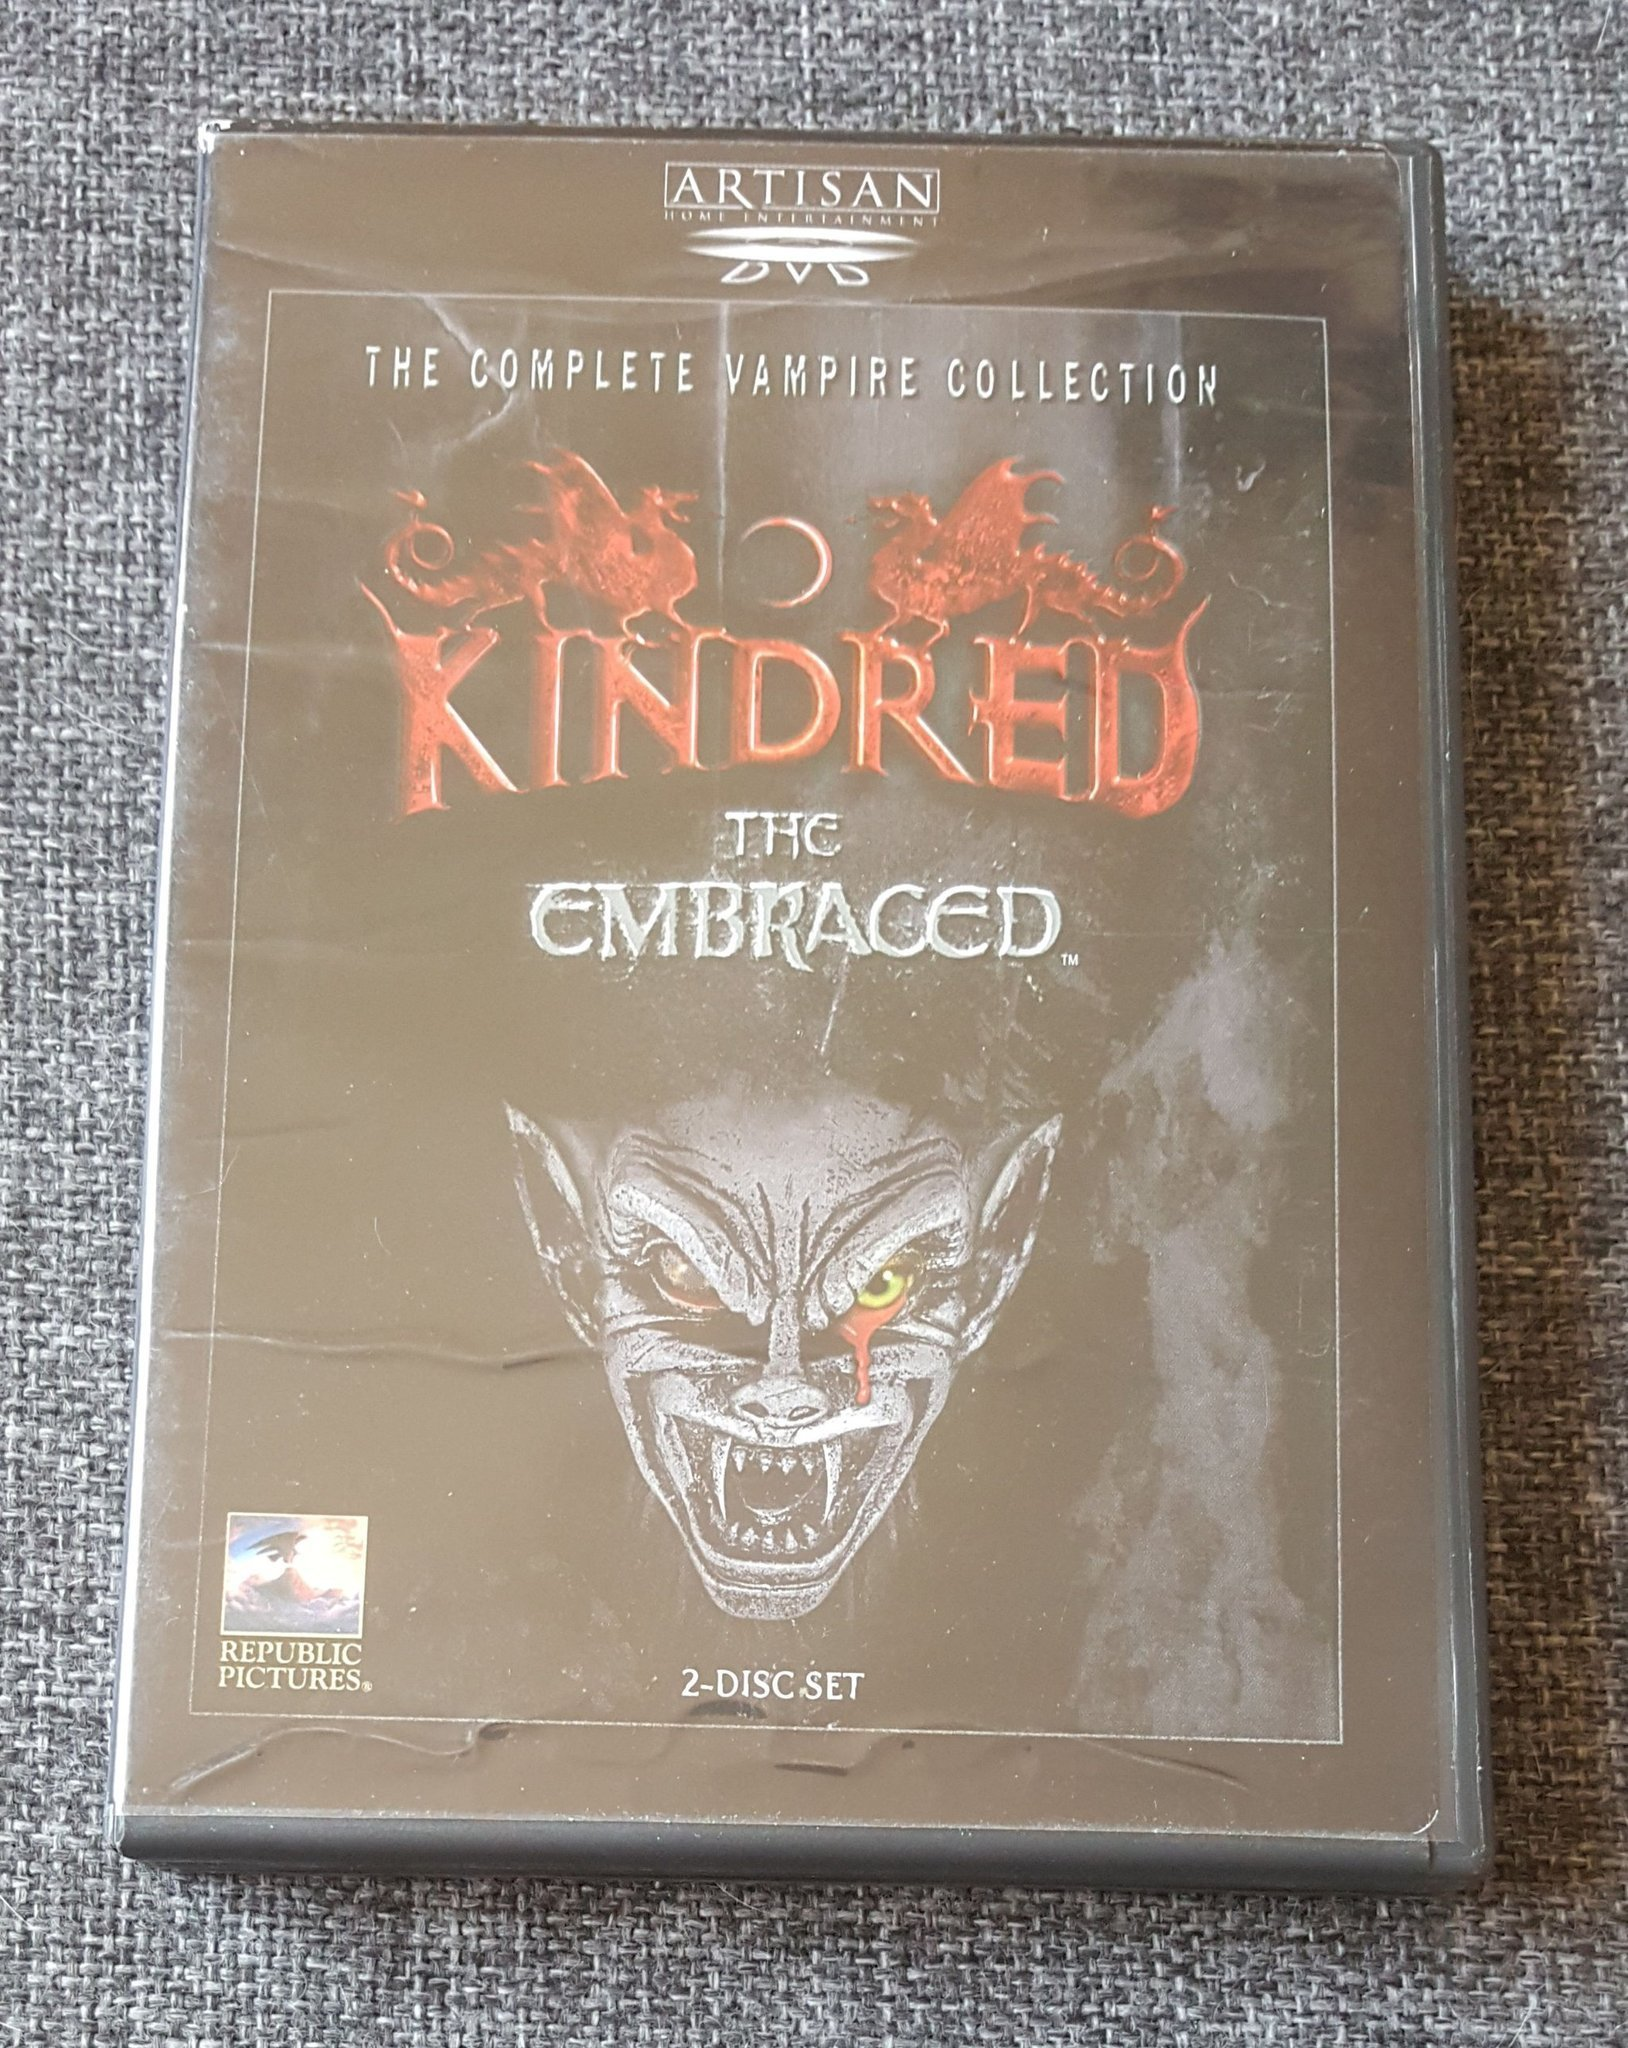 Kindred The Enbraced (Complete Vampire Collection) 2-disc Region 1